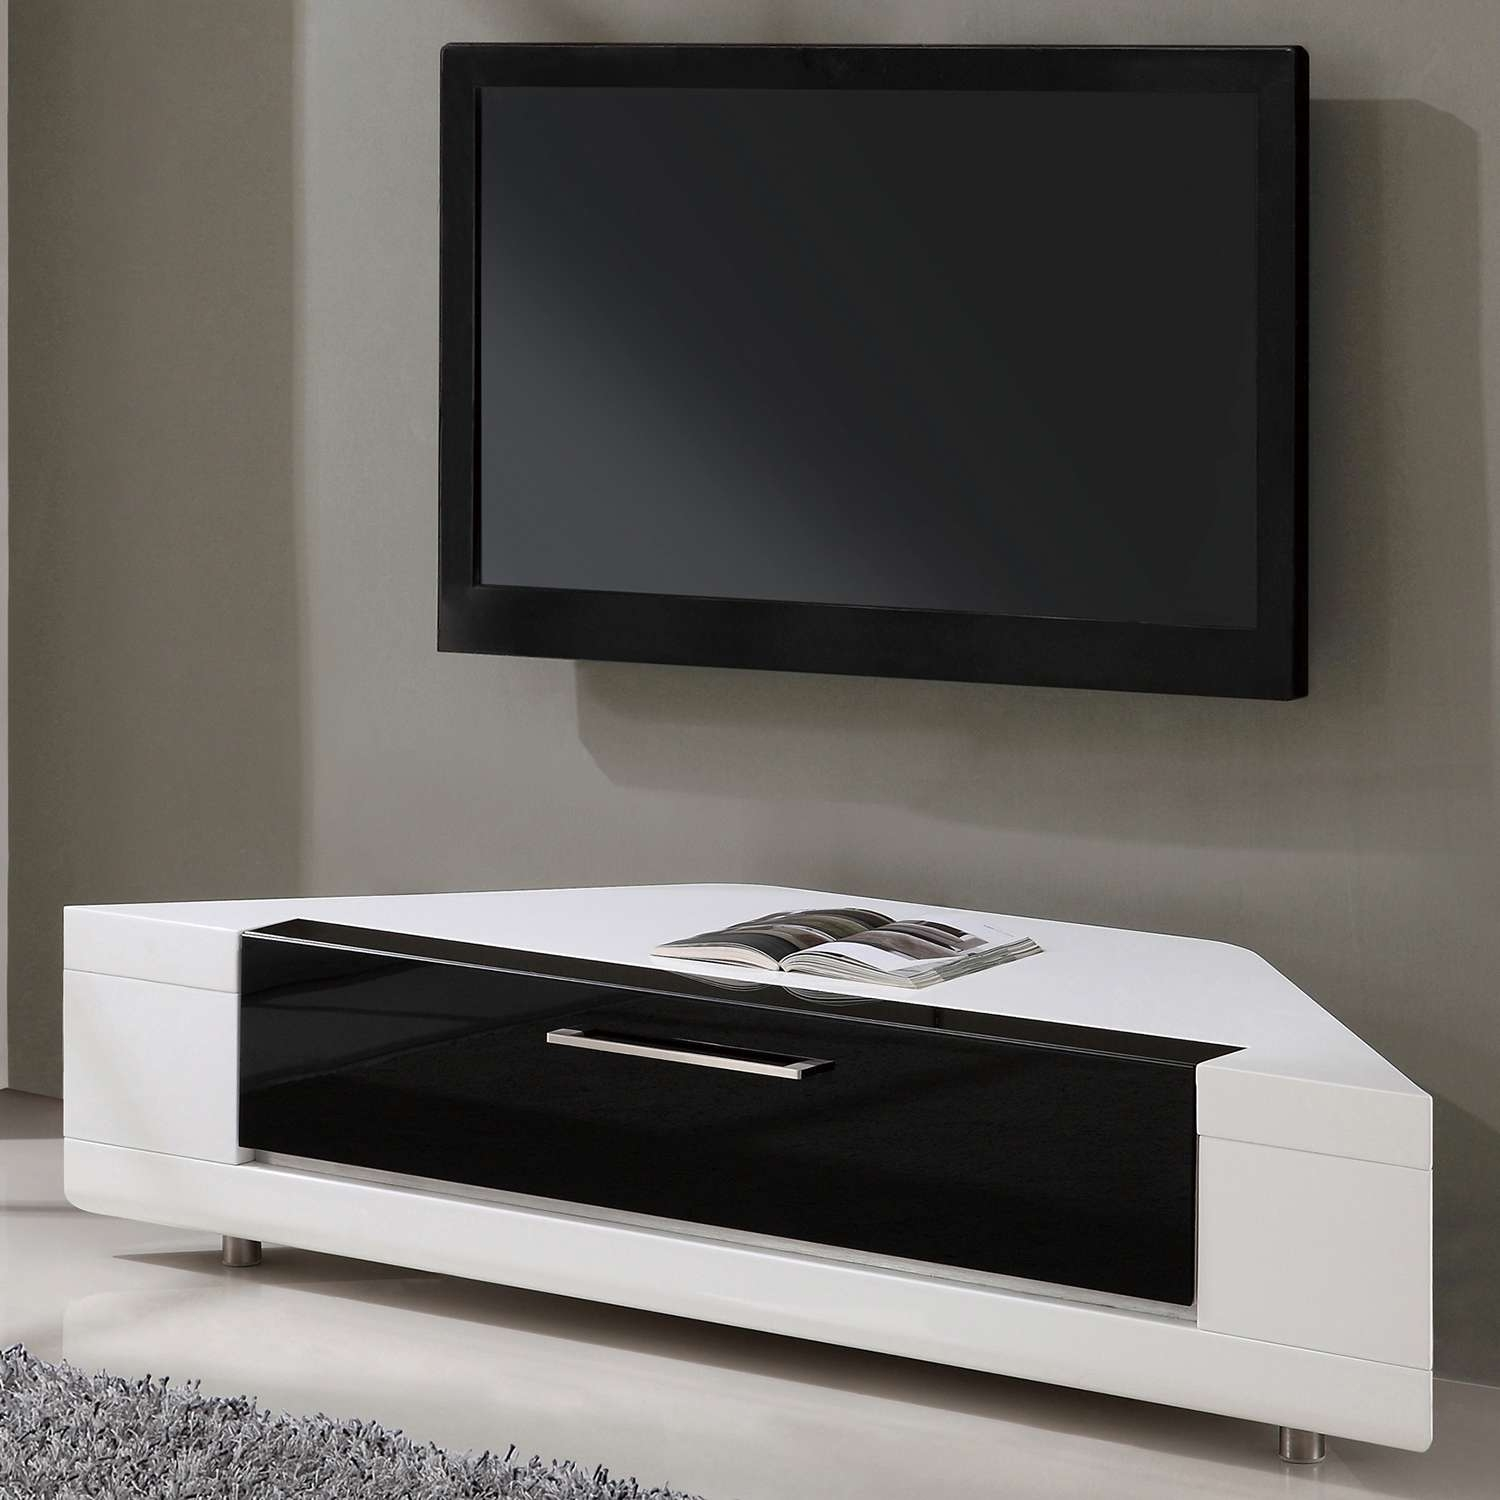 "B Modern Bm 634 Wht Editor Remix 60"" Corner Tv Stand In White High Regarding High Gloss Tv Cabinets (View 1 of 20)"